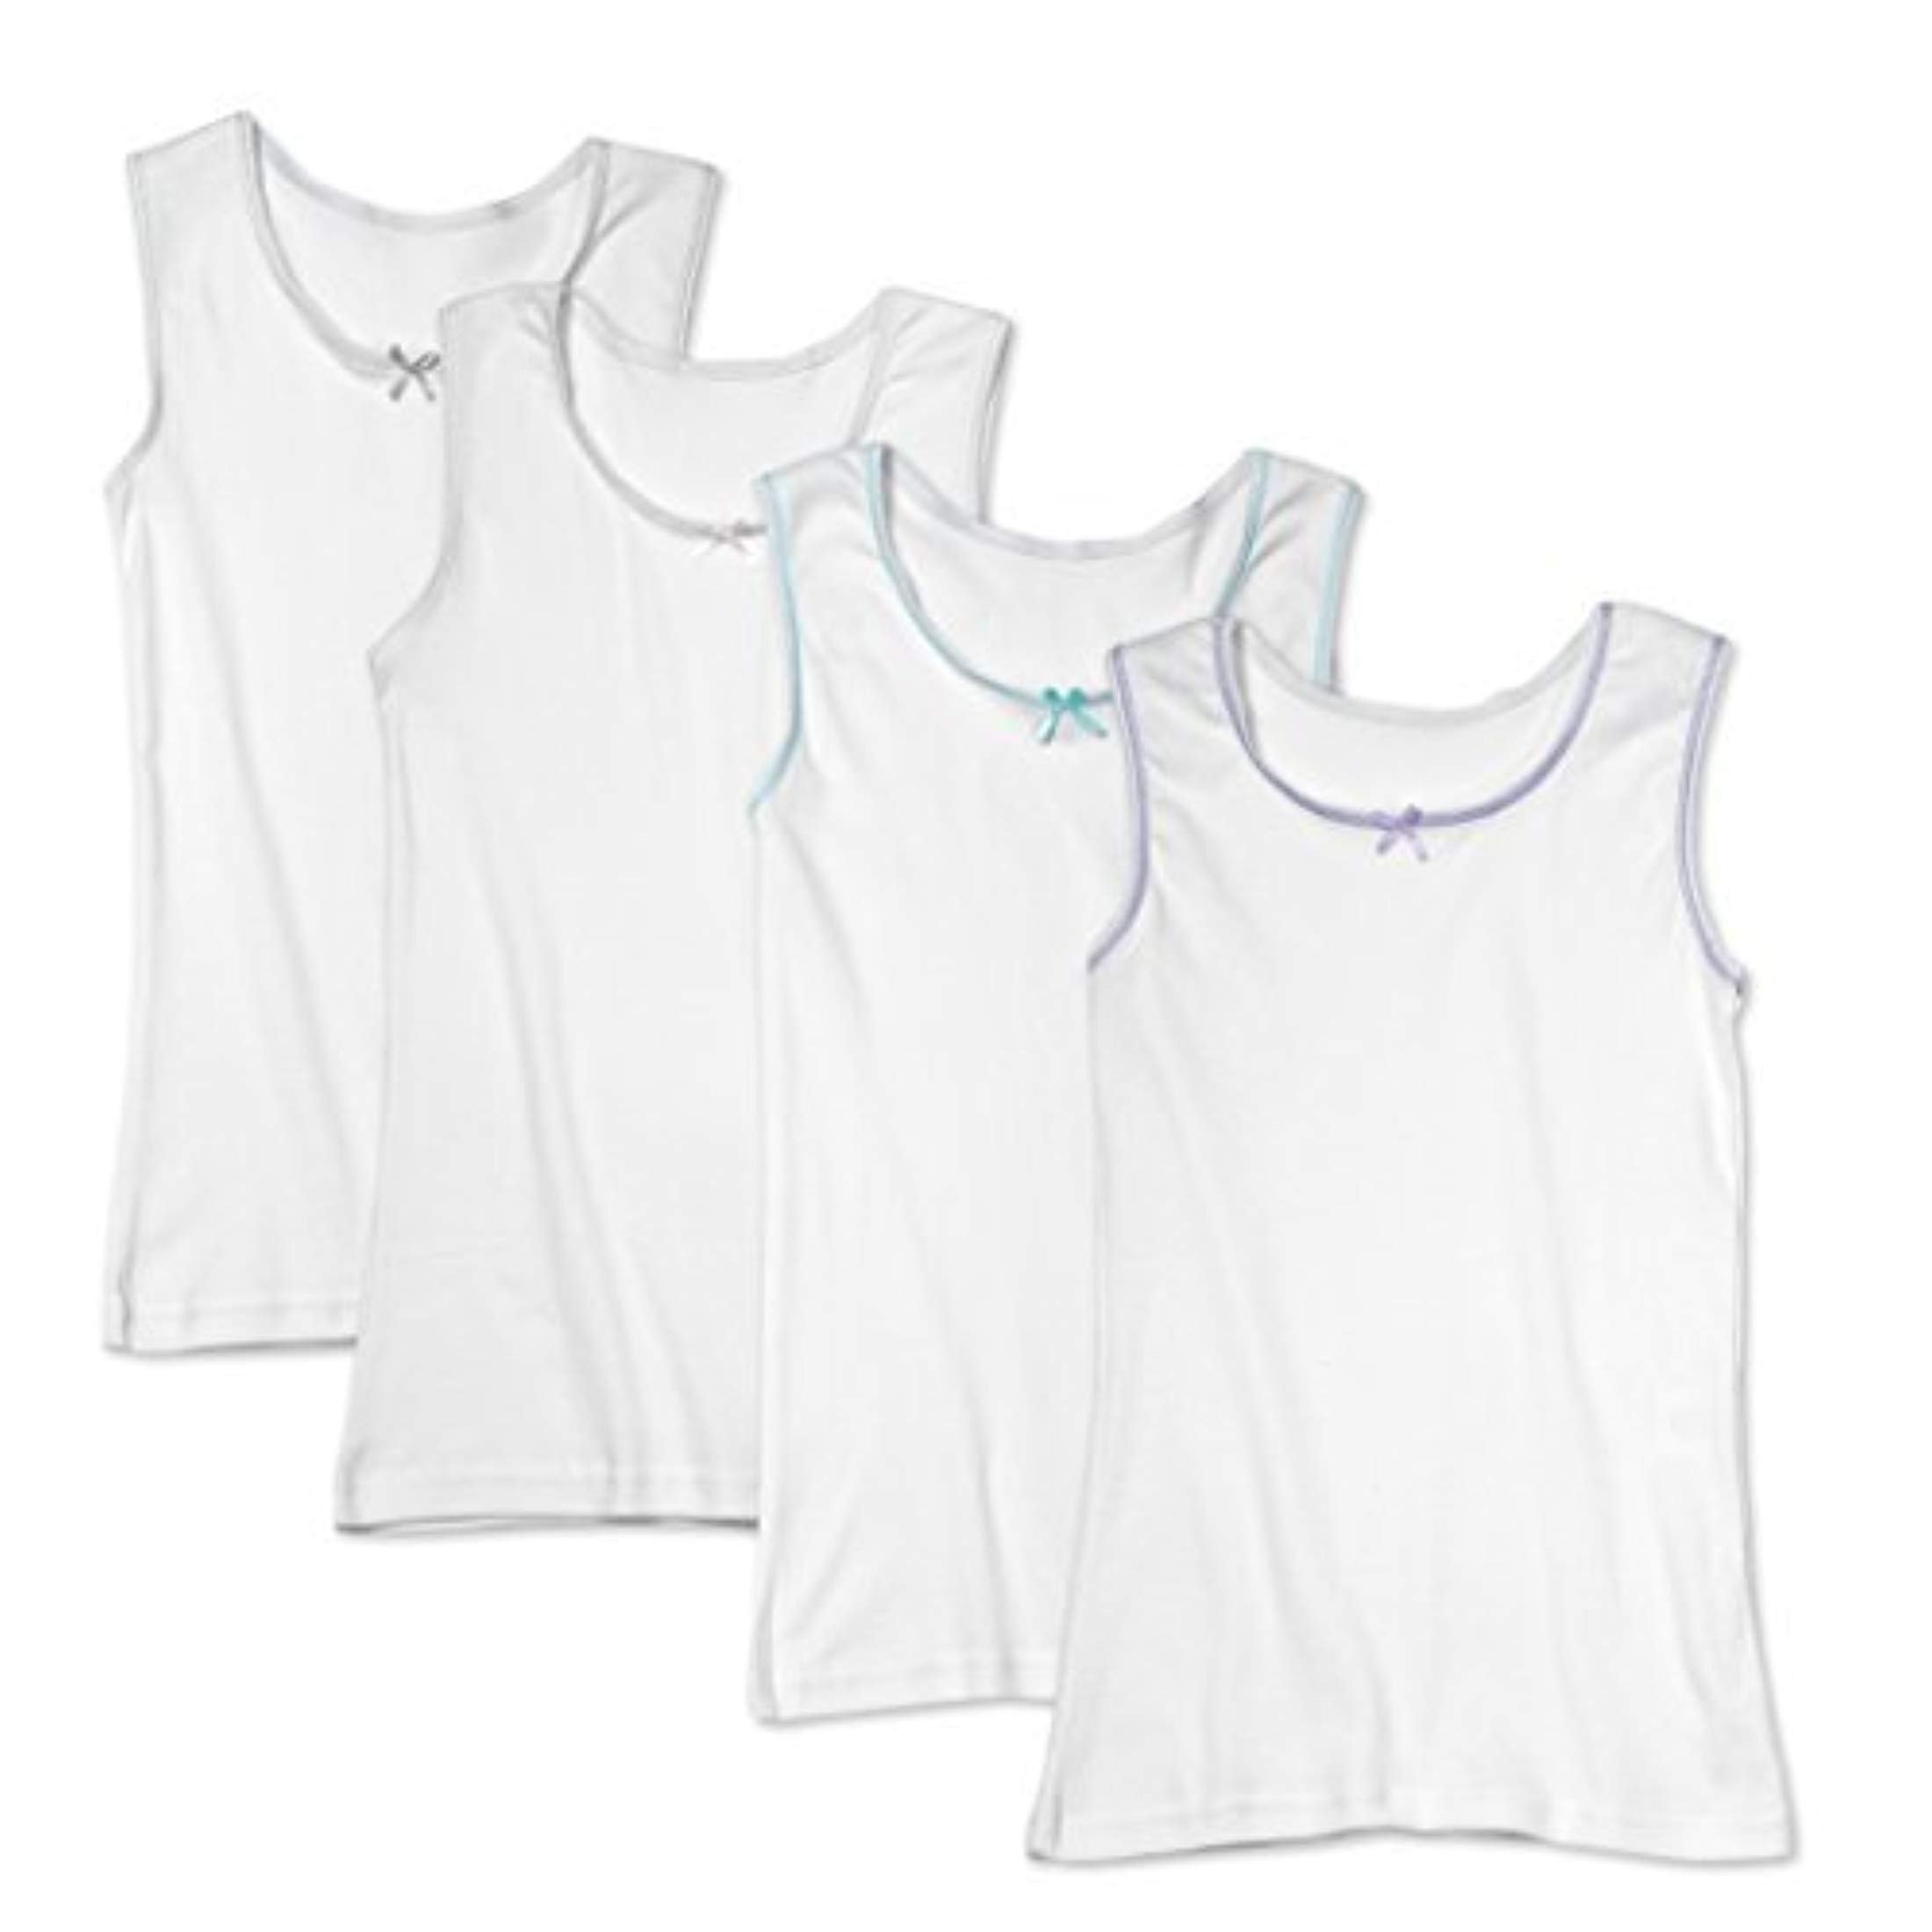 Buyless Fashion Little Girls 100% Cotton White Scoop Neck Undershirt with Colored Trim (4 Pack) 7-8